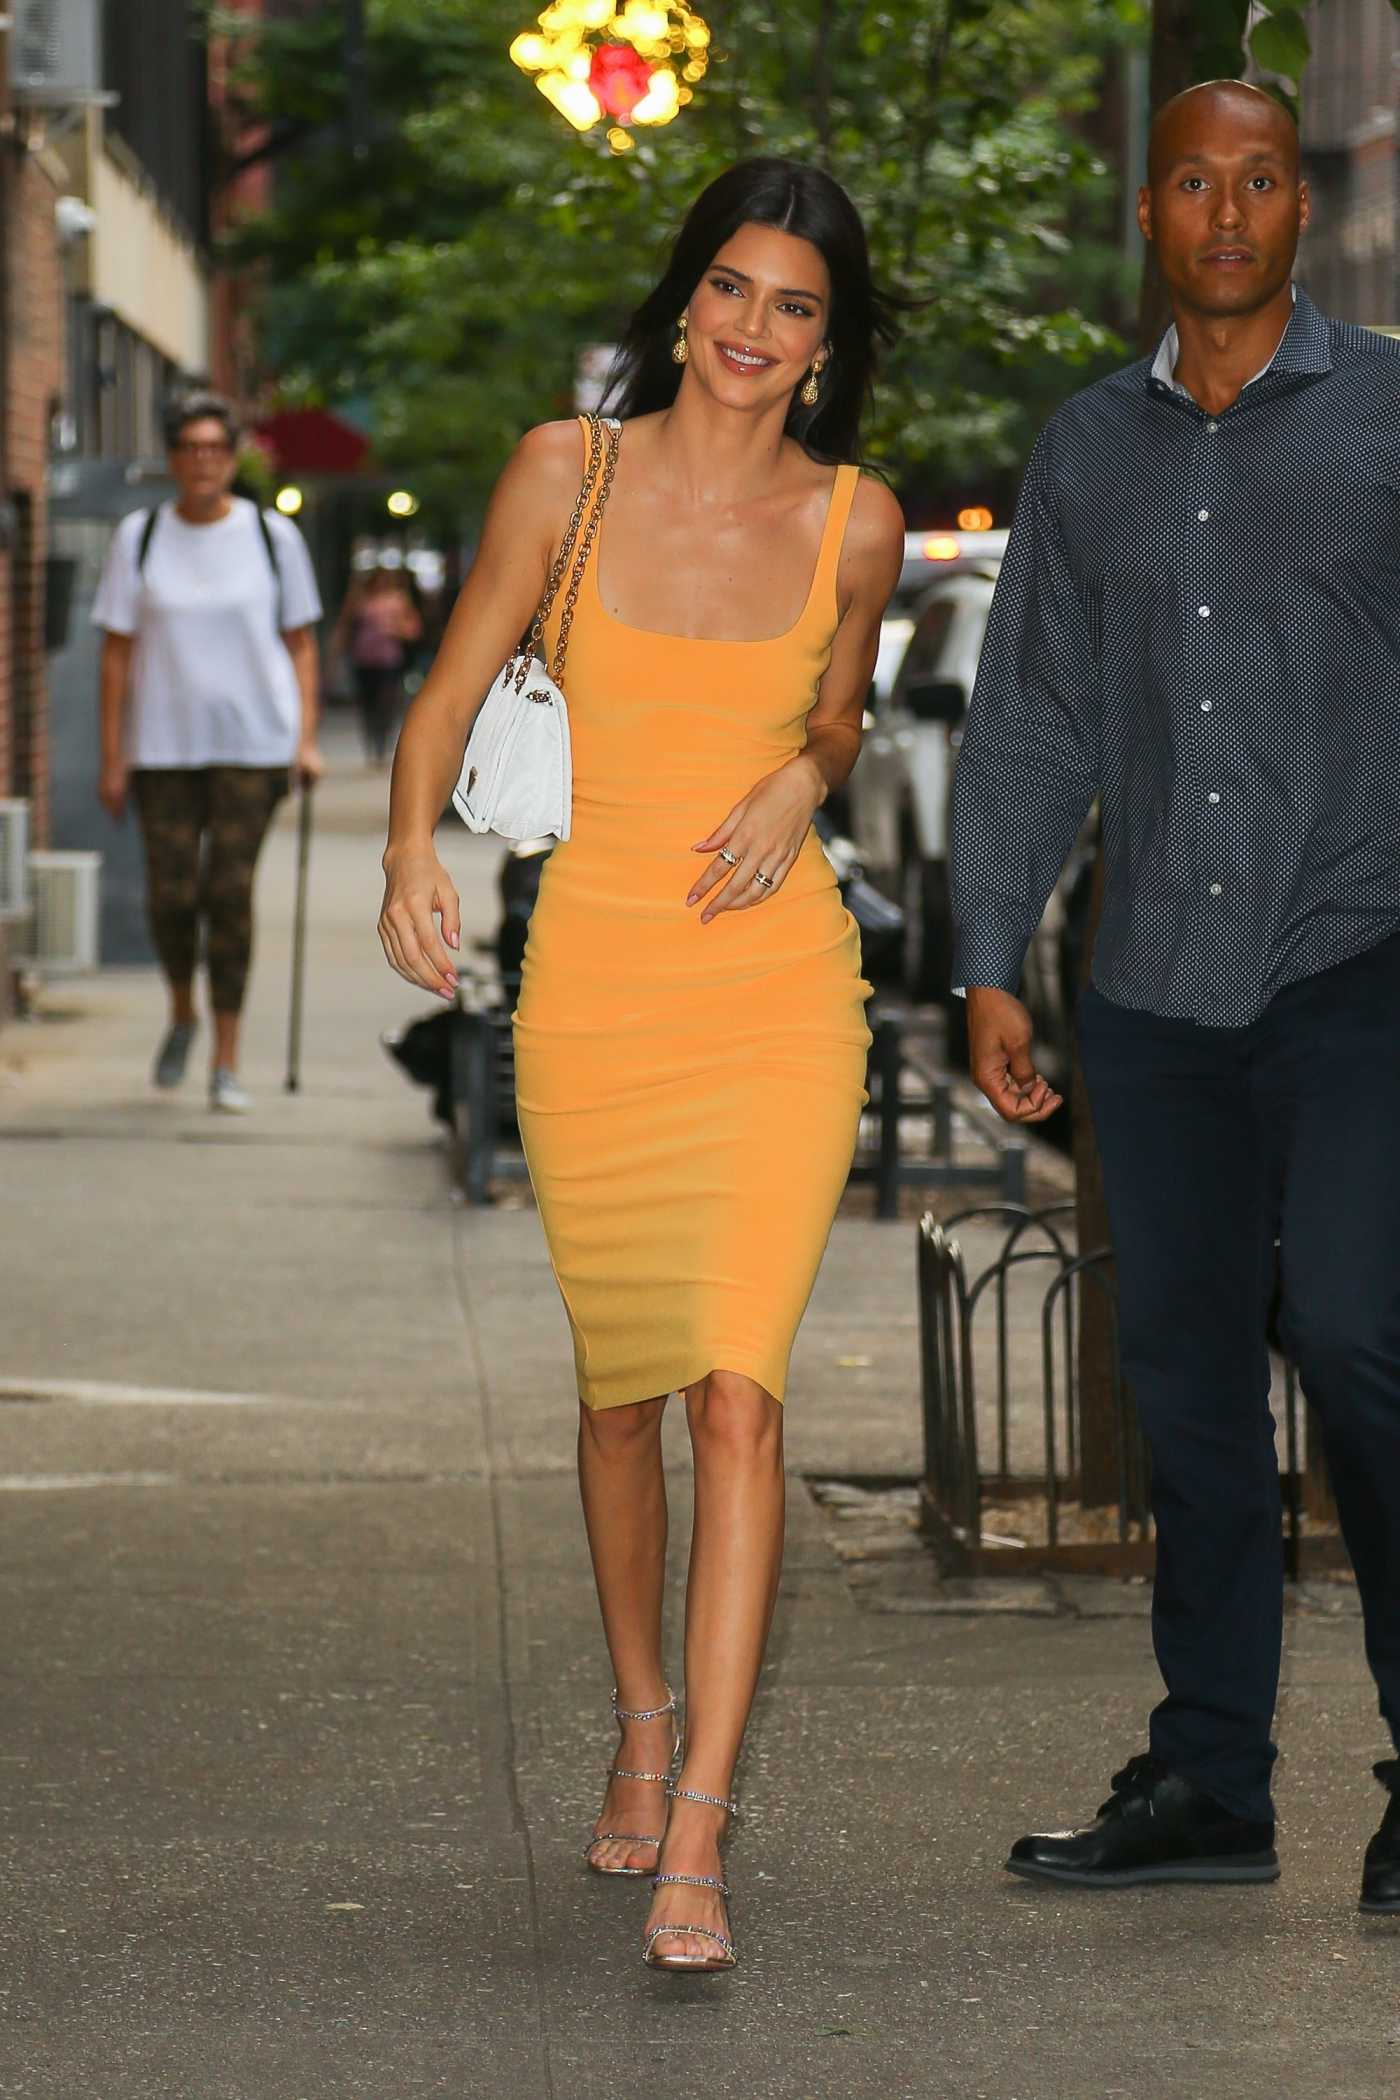 Kendall Jenner in a Yellow Dress Was Seen Out in New York 06/17/2019